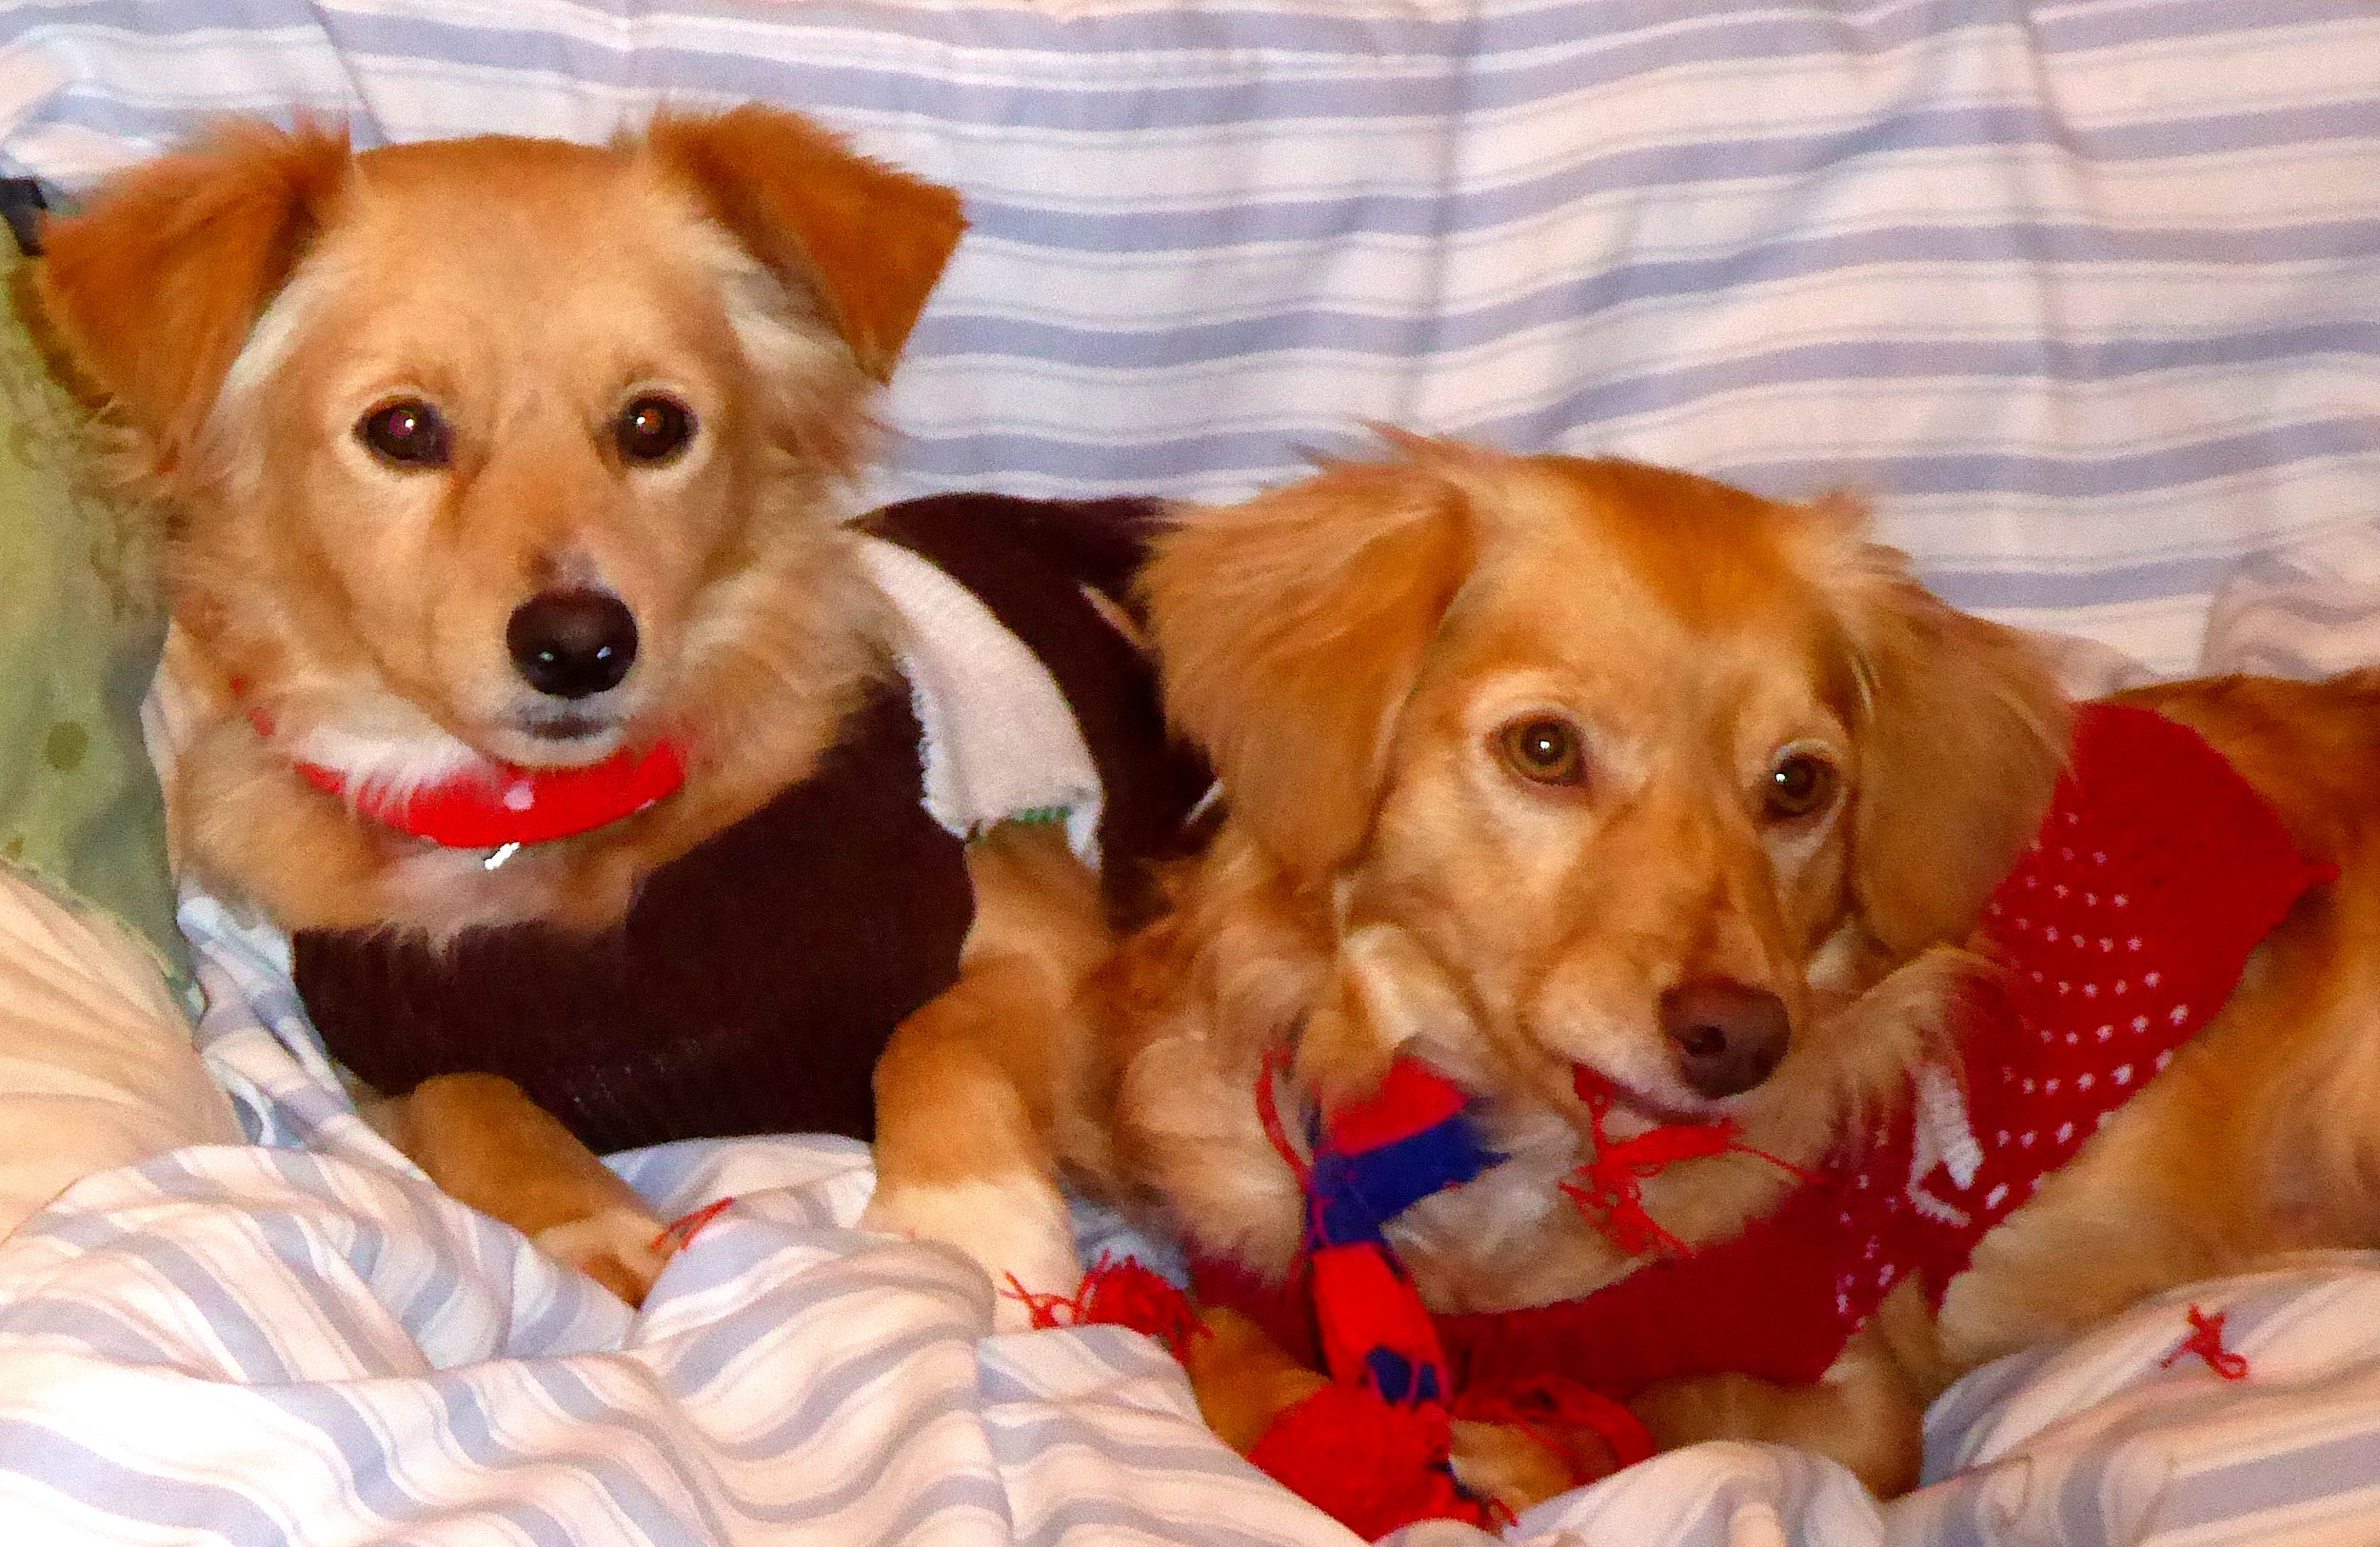 Ollie and Stanley. Photo courtesy Steve Sims.